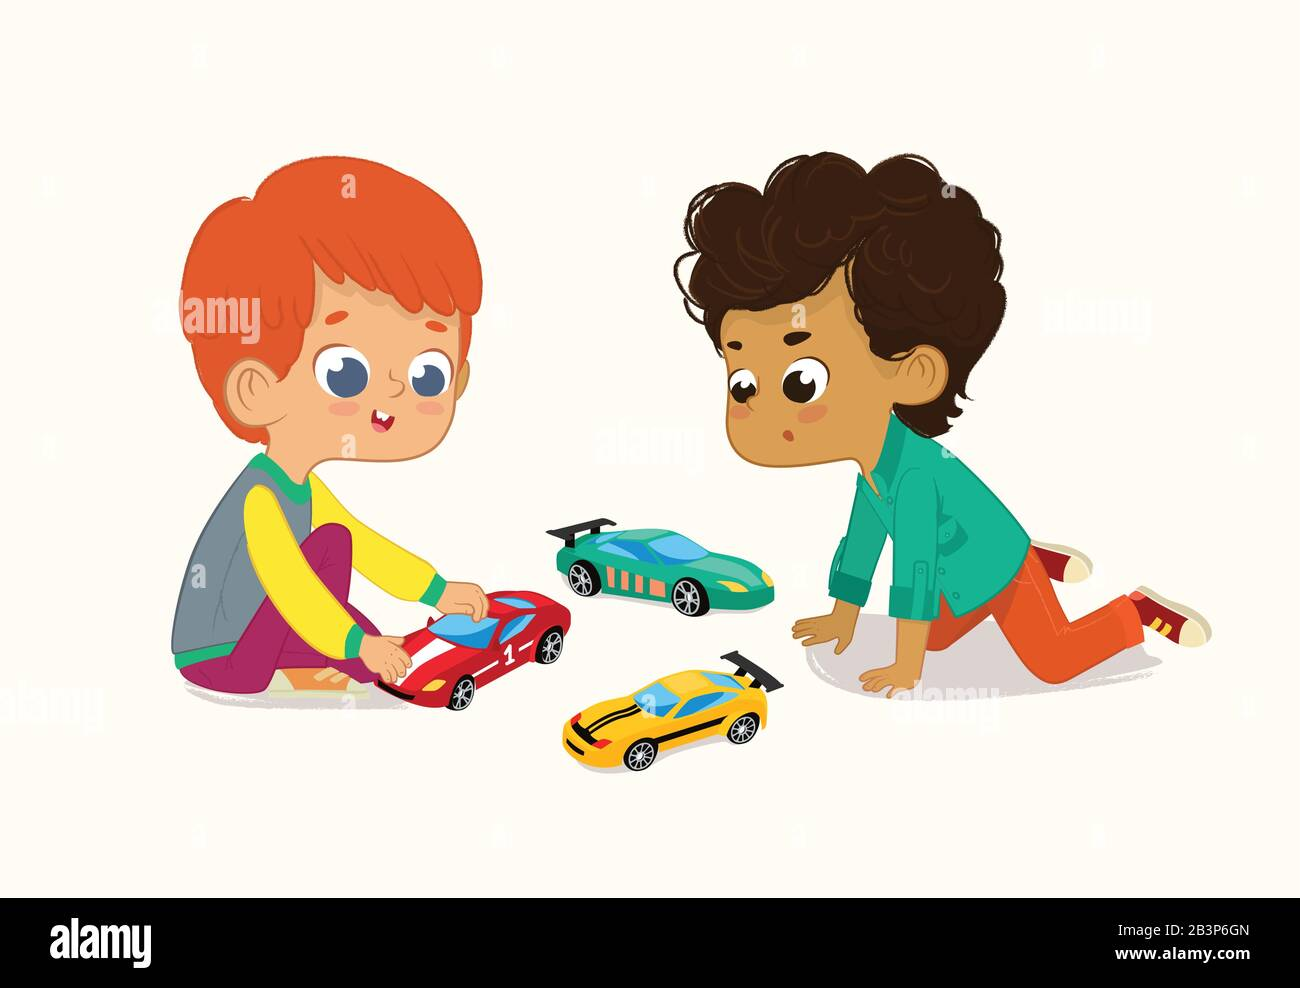 Illustration Of Two Cute Boys Playing With Their Toys Cars Red Hair Boy Shows And Shares His Toy Cars To His African American Friend Stock Vector Image Art Alamy